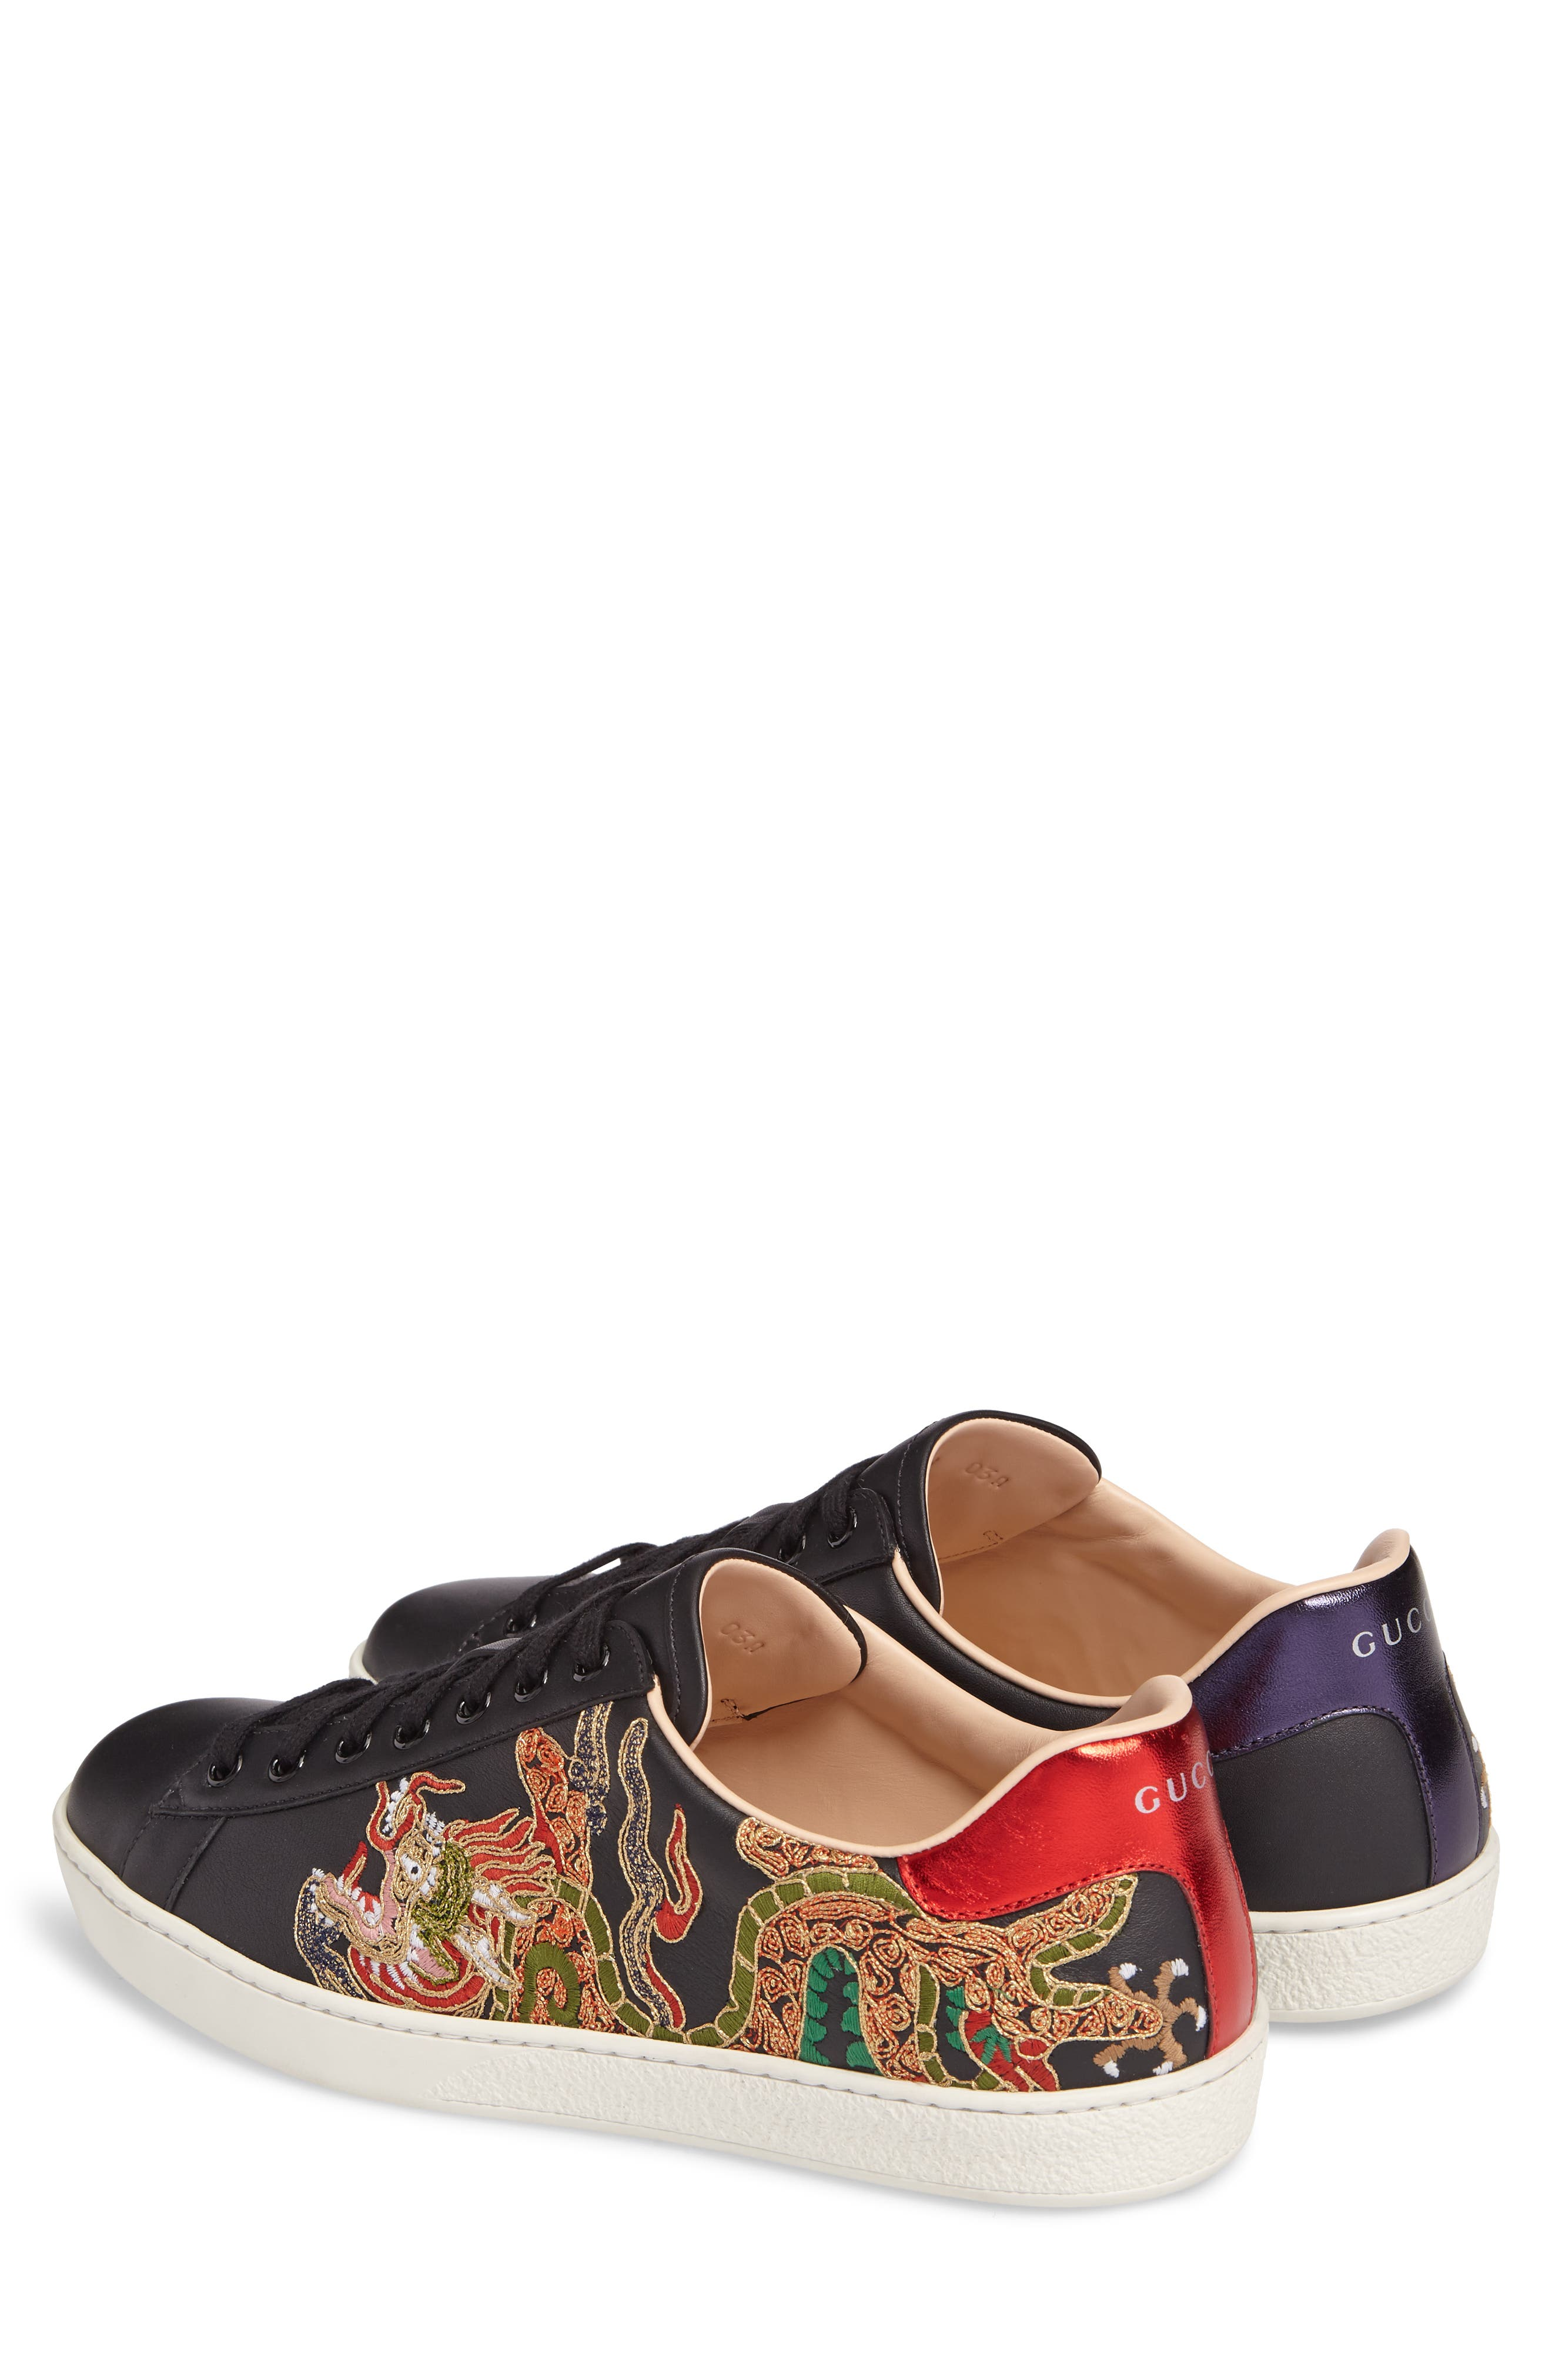 New Ace Embroidered Sneaker,                             Alternate thumbnail 2, color,                             009